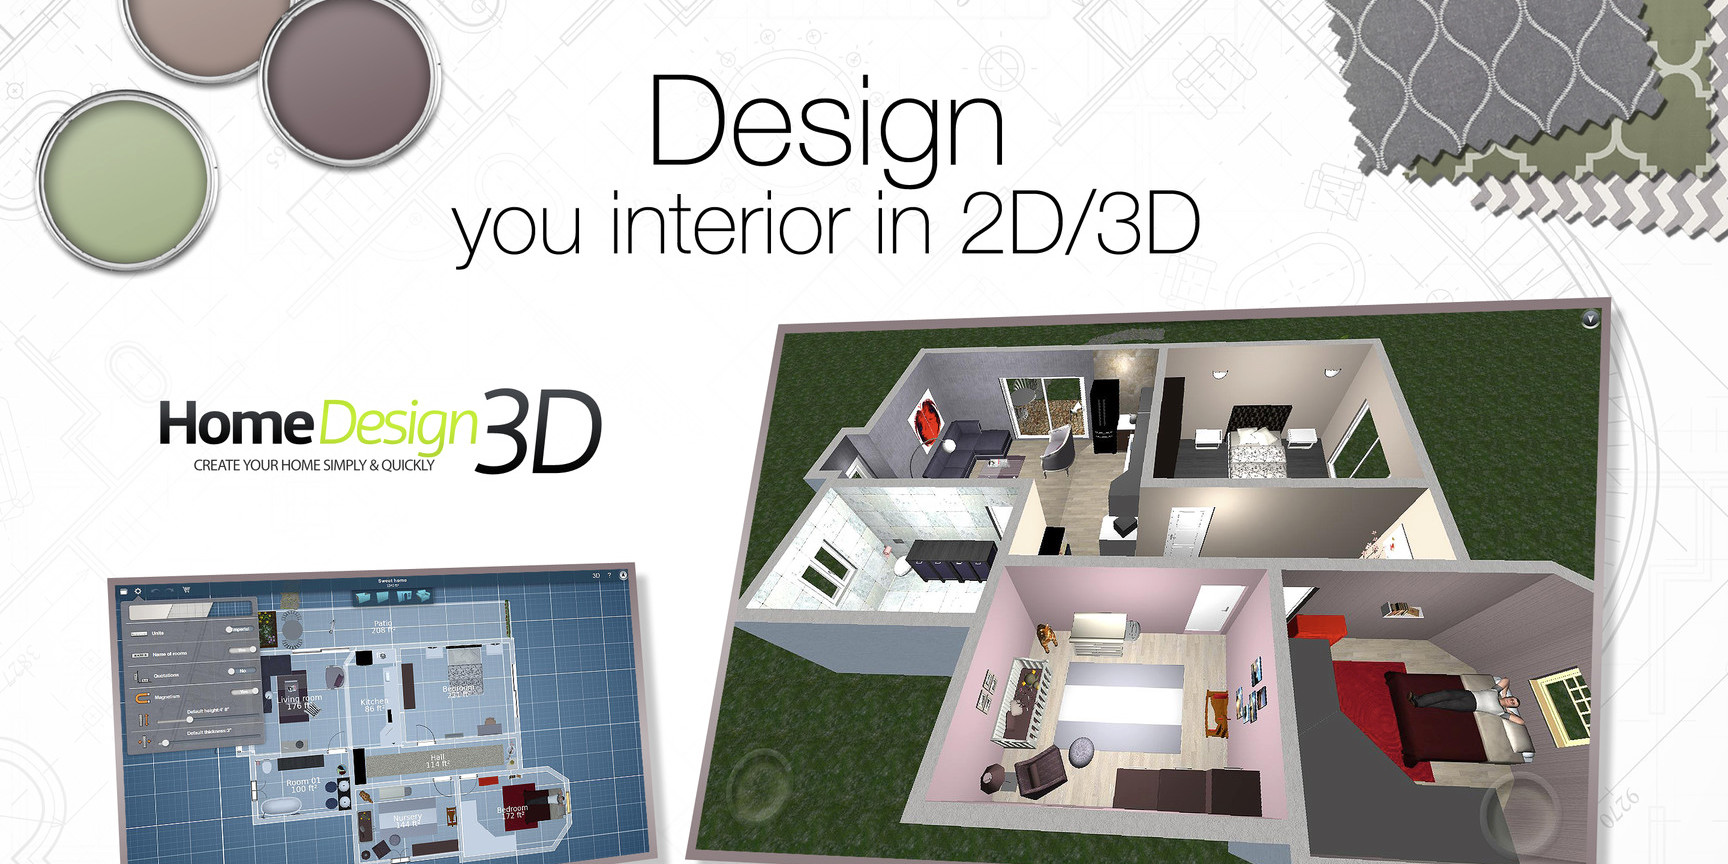 Home Designer 3d For Ios Mac Goes Free For The First Time Gold Version 1 Reg Up To 10 9to5toys